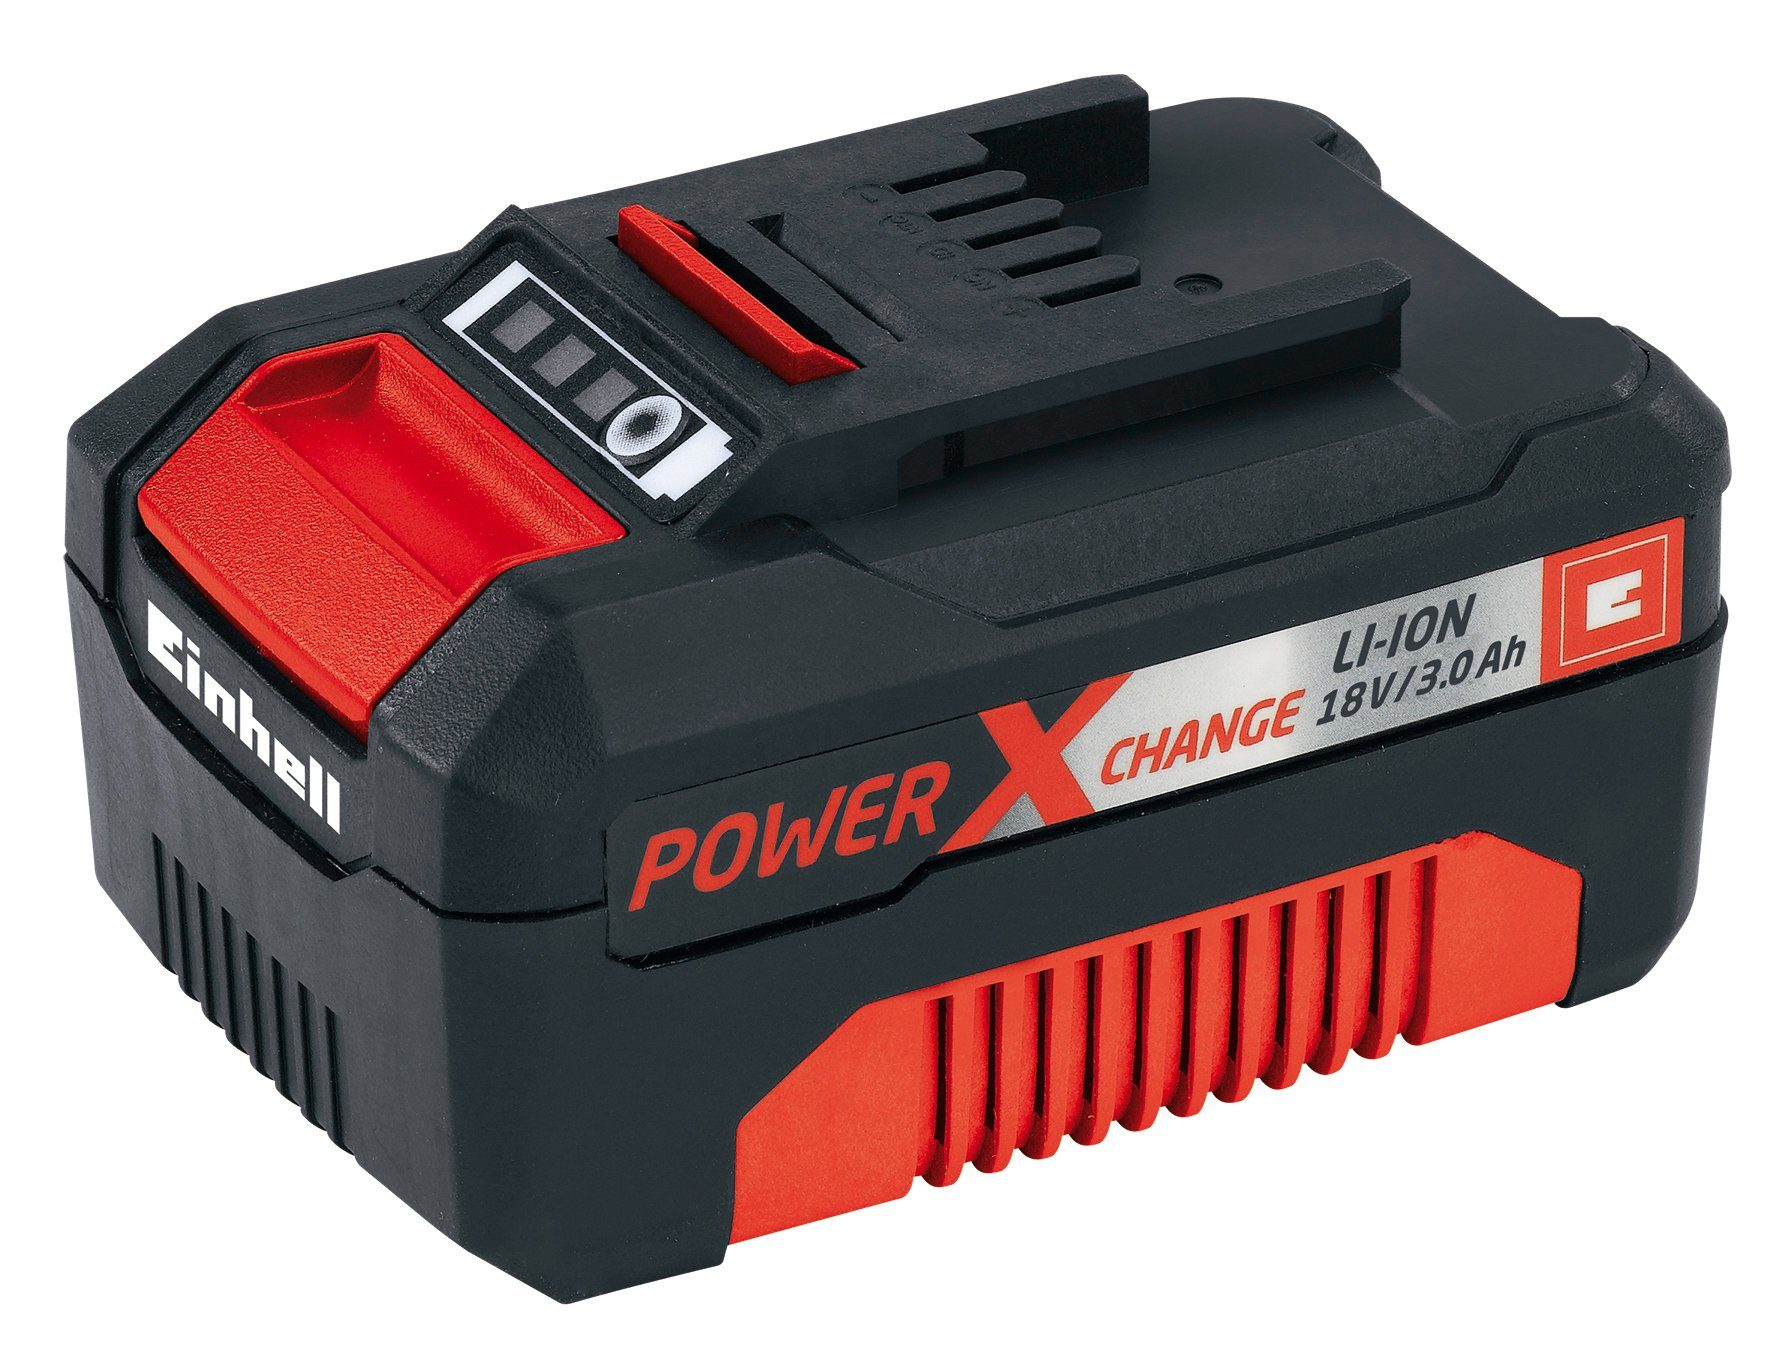 Lithium-Ionen-Akku »Power X-Change 18 V 3,0 Ah«, Power X-Change Serie